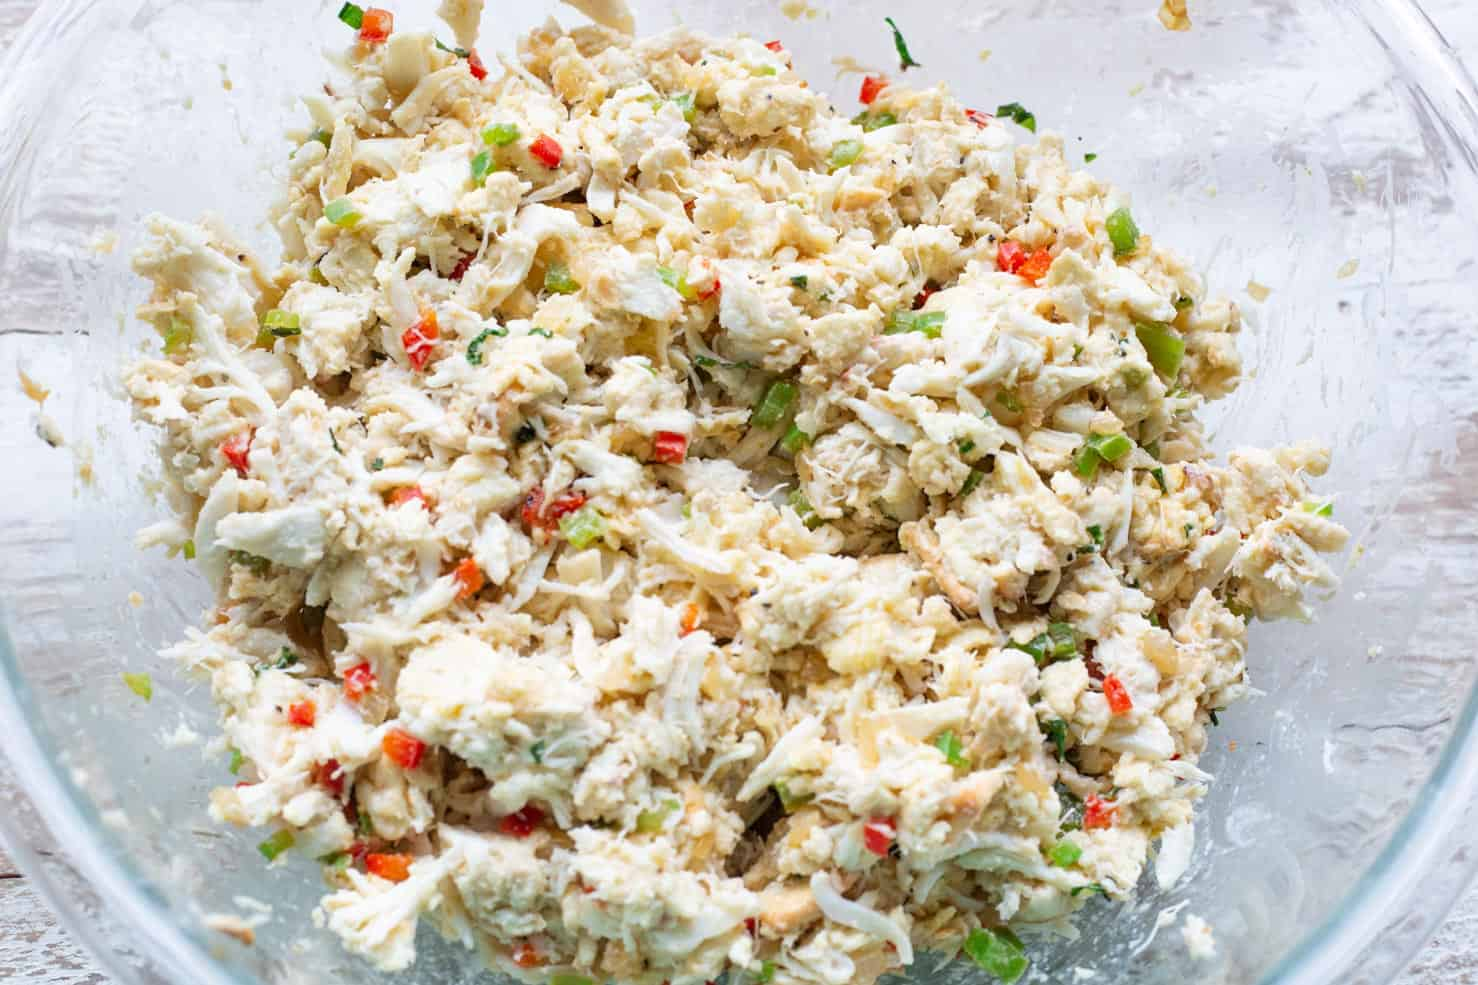 A colorful mixture of crab and vegetables. The mixture for the crab balls.